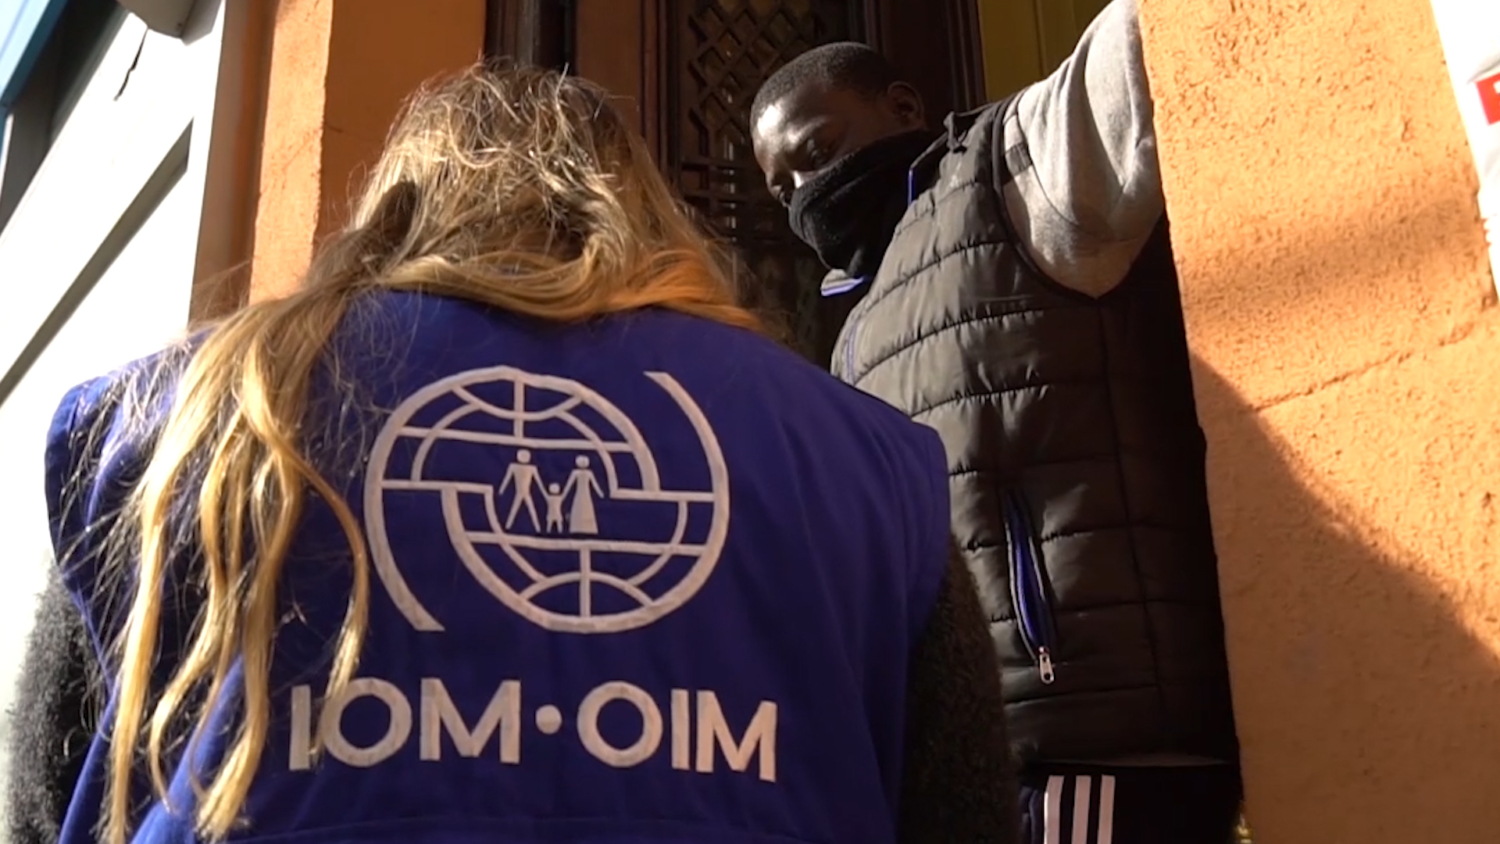 An IOM Staff speaks to a man at the entry to his home.